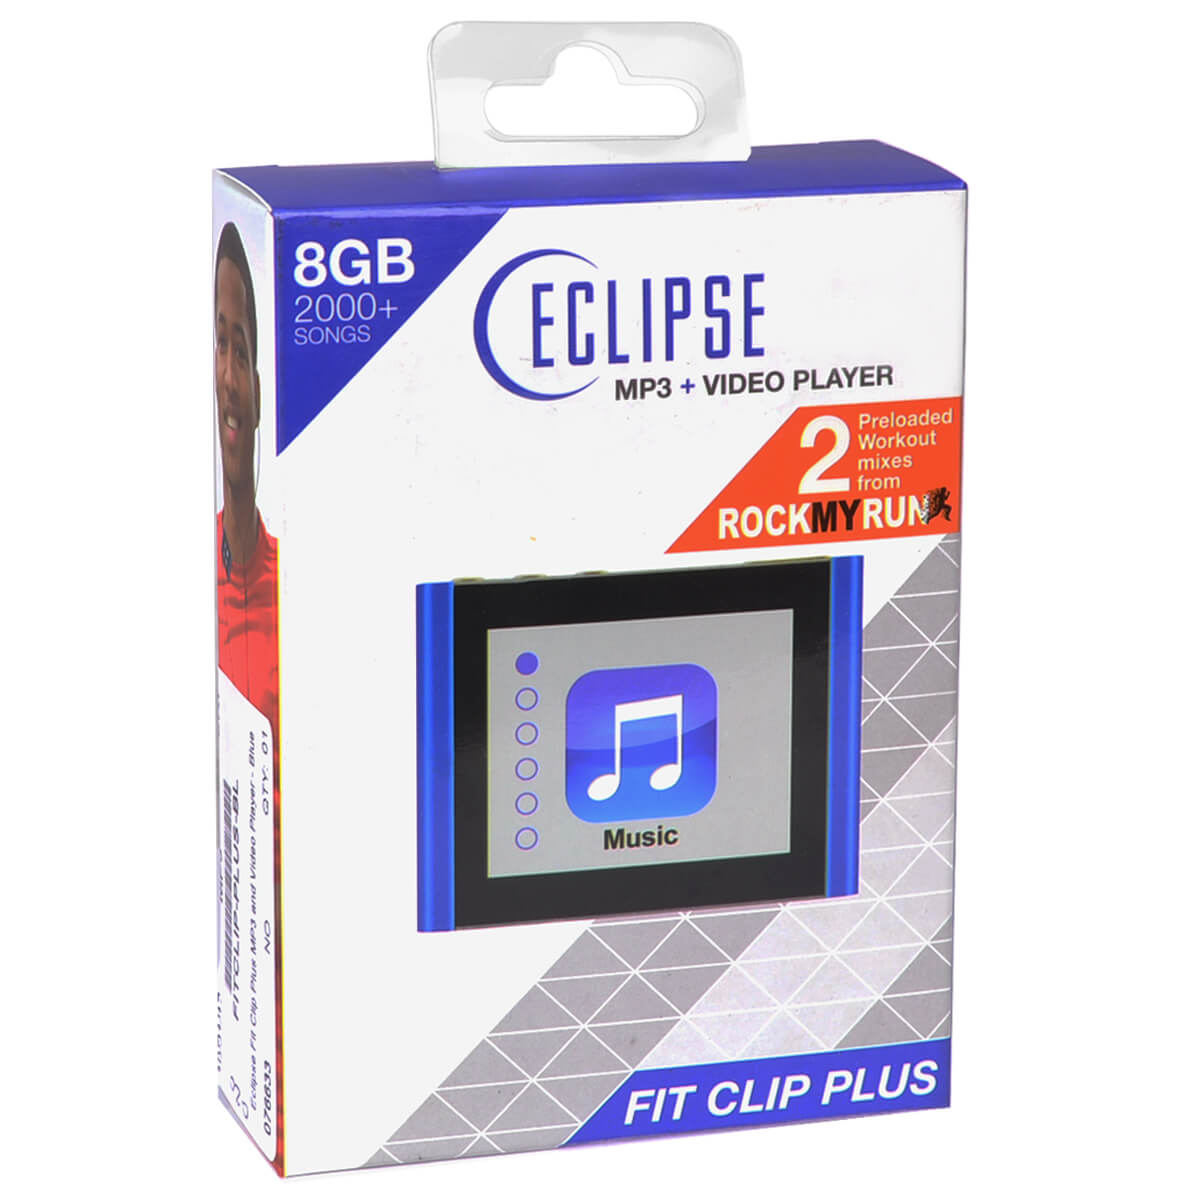 Eclipse-Fit-Clip-Plus-8GB-1-8-034-LCD-MP3-Digital-Music-Video-Player-amp-Pedometer thumbnail 5